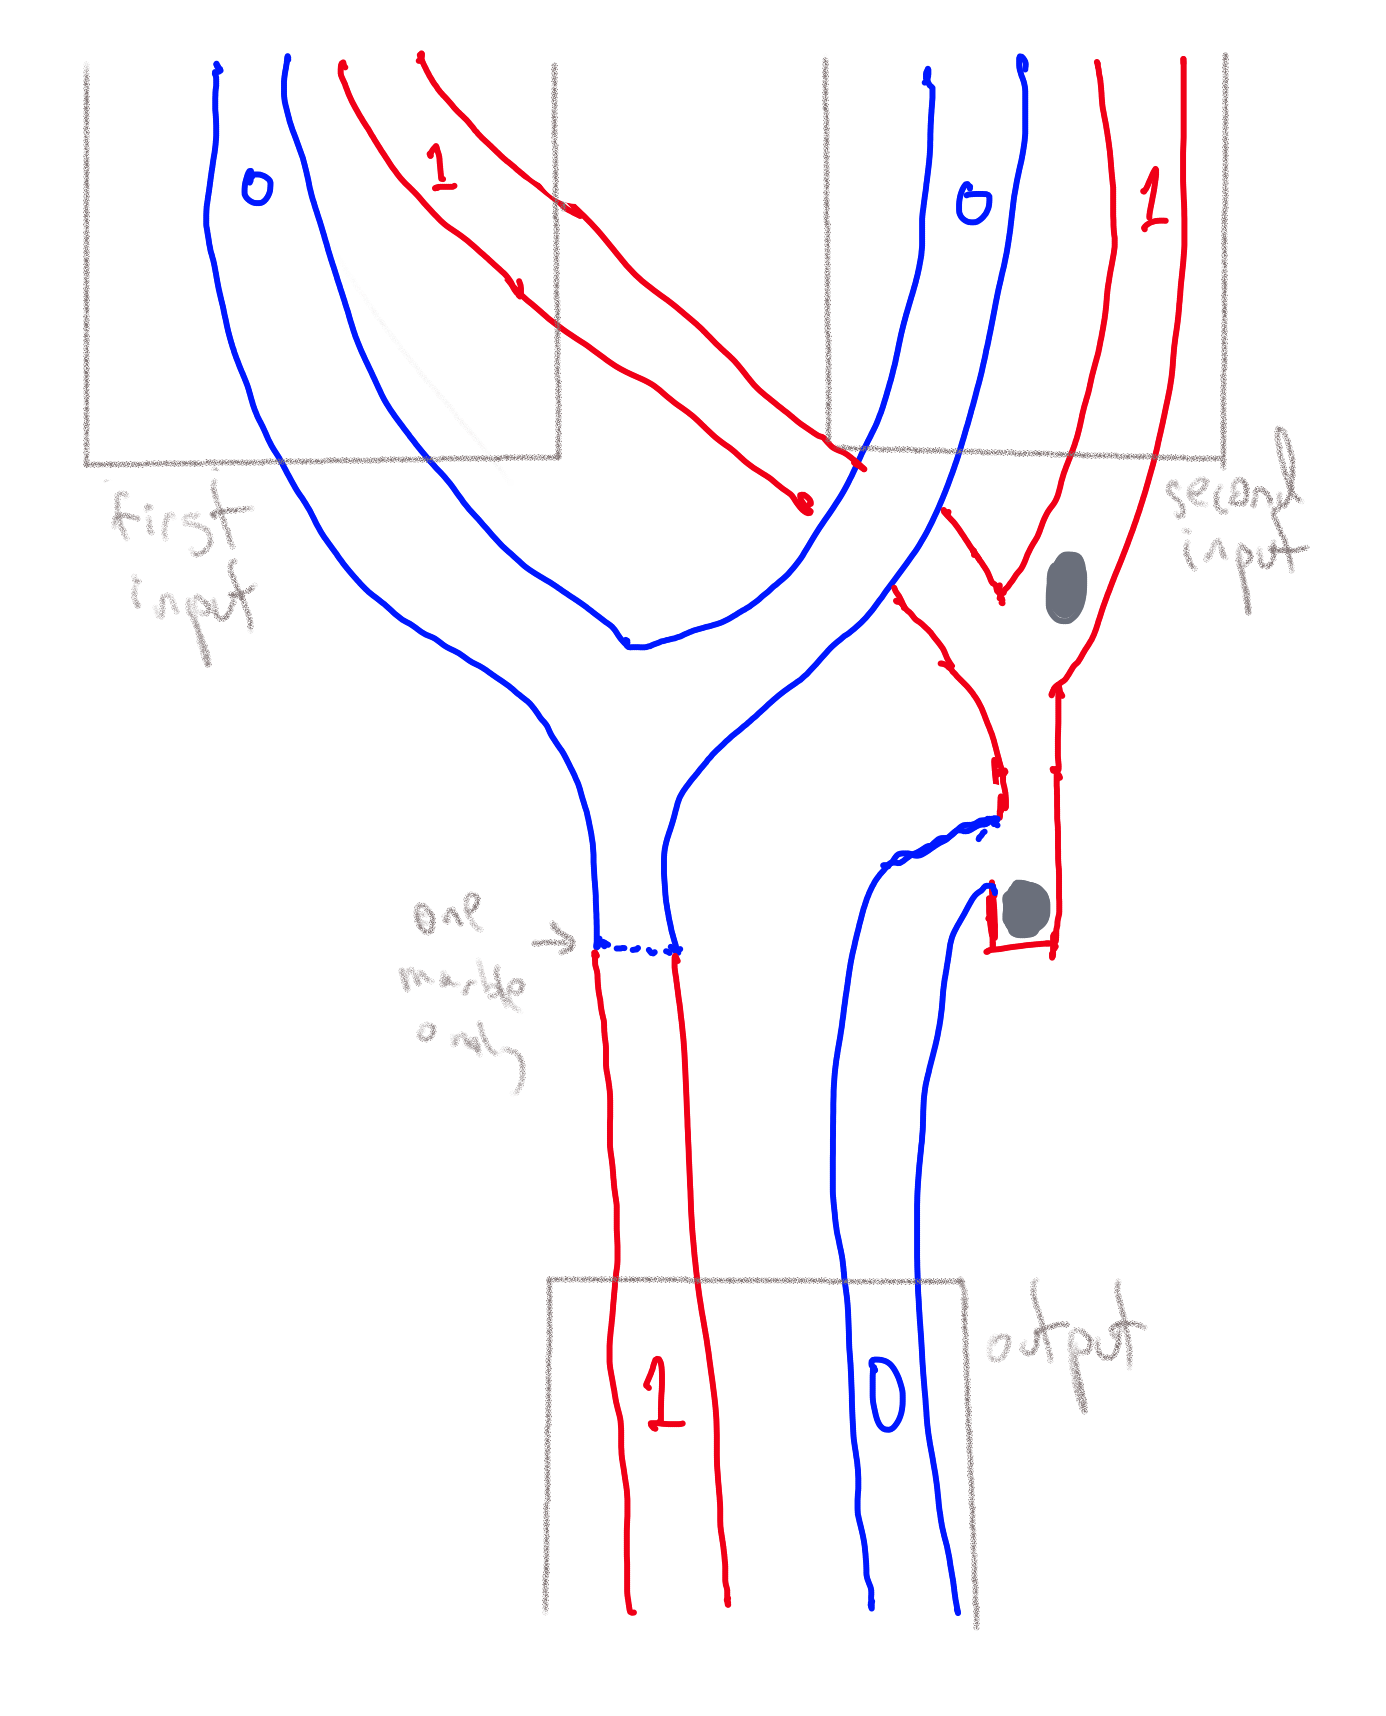 A physical implementation of a NAND gate using marbles. Each wire in a Boolean circuit is modeled by a pair of pipes representing the values 0 and 1 respectively, and hence a gate has four input pipes (two for each logical input) and two output pipes. If one of the input pipes representing the value 0 has a marble in it then that marble will flow to the output pipe representing the value 1. (The dashed line represent a gadget that will ensure that at most one marble is allowed to flow onward in the pipe.) If both the input pipes representing the value 1 have marbles in them, then the first marble will be stuck but the second one will flow onwards to the output pipe representing the value 0.